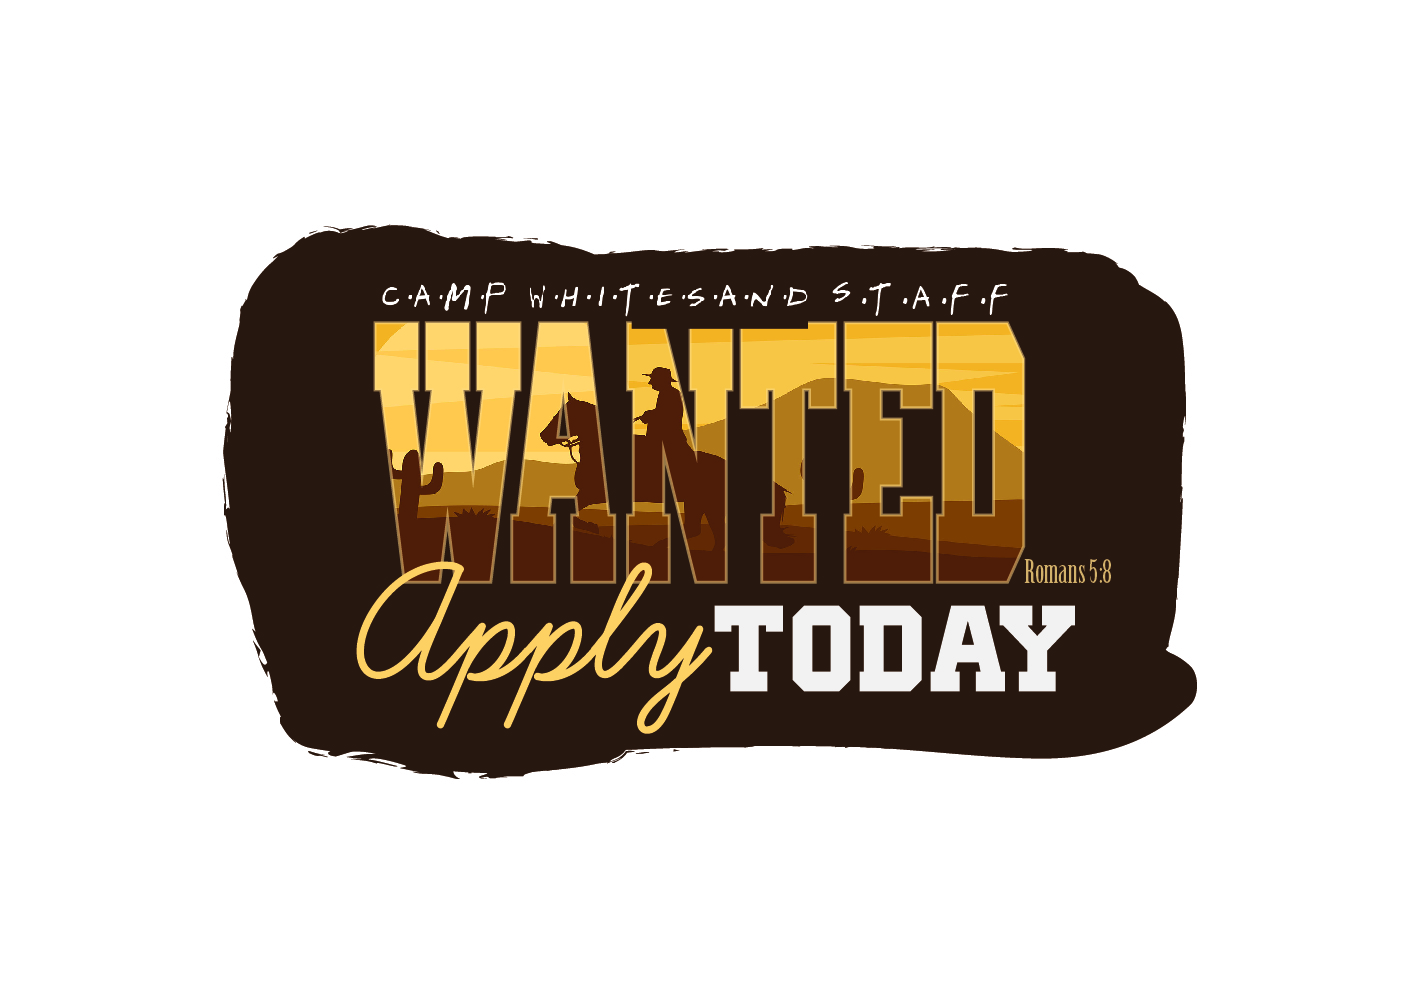 Apply today image